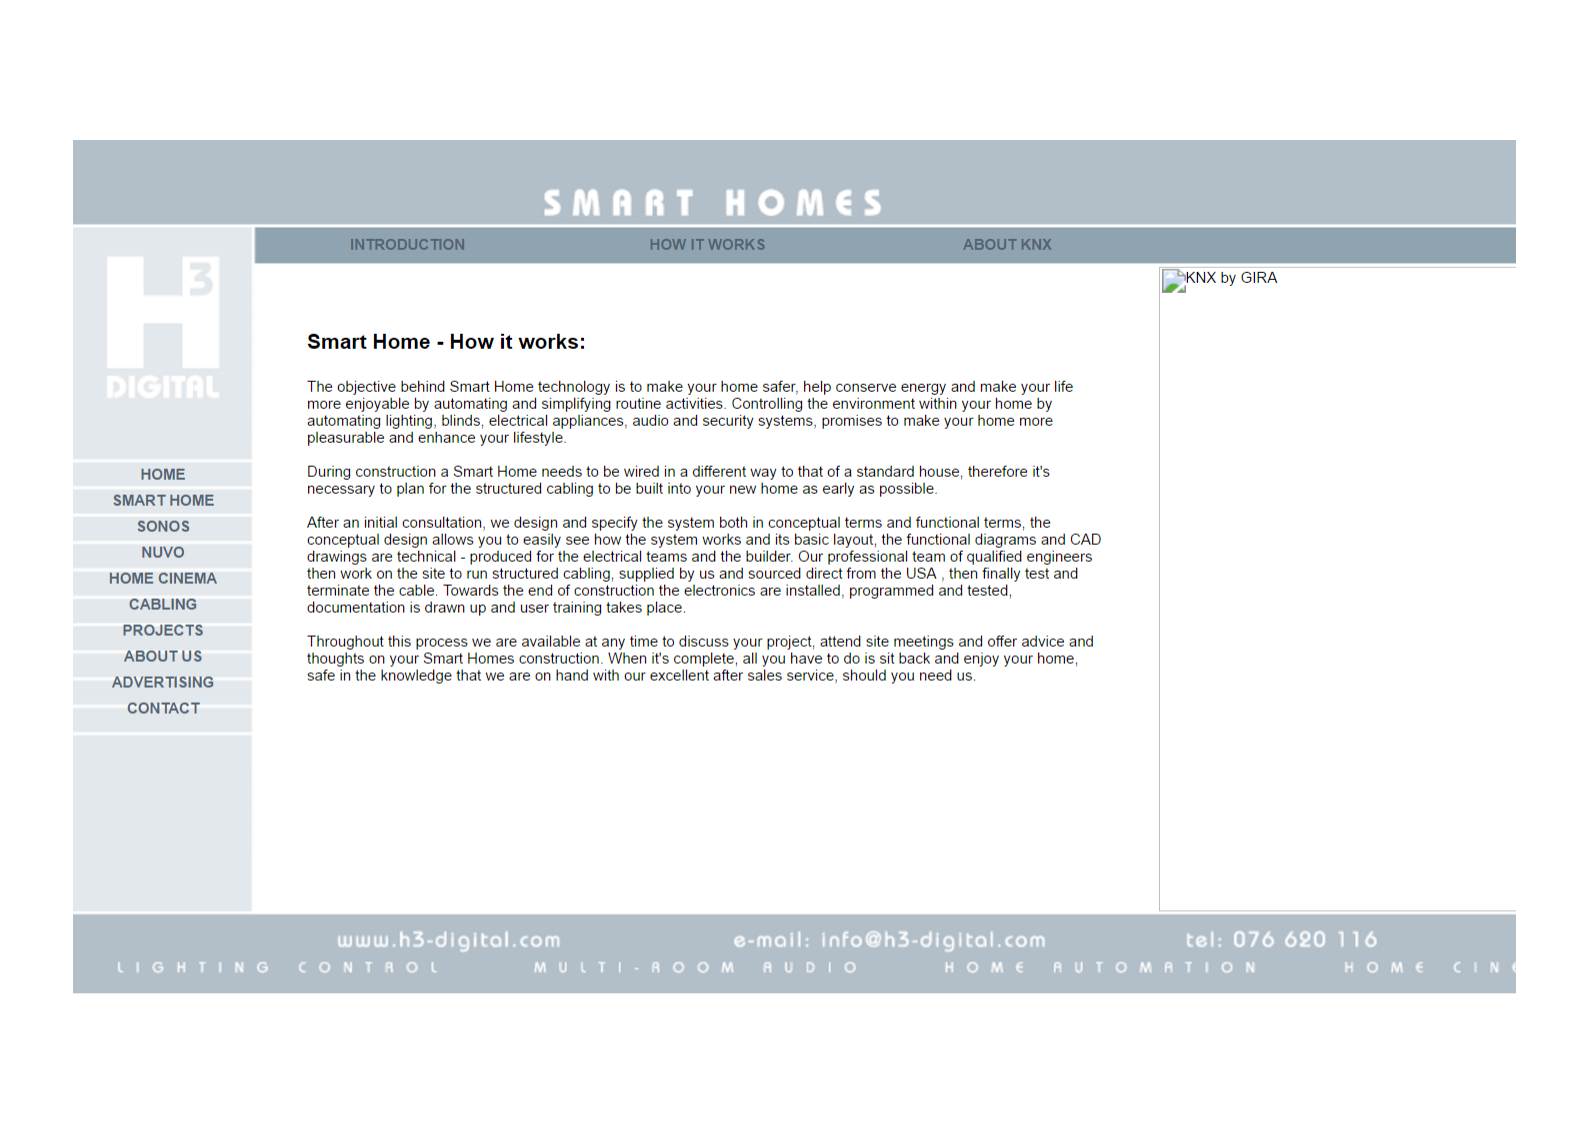 Smart Homes Page from 2009